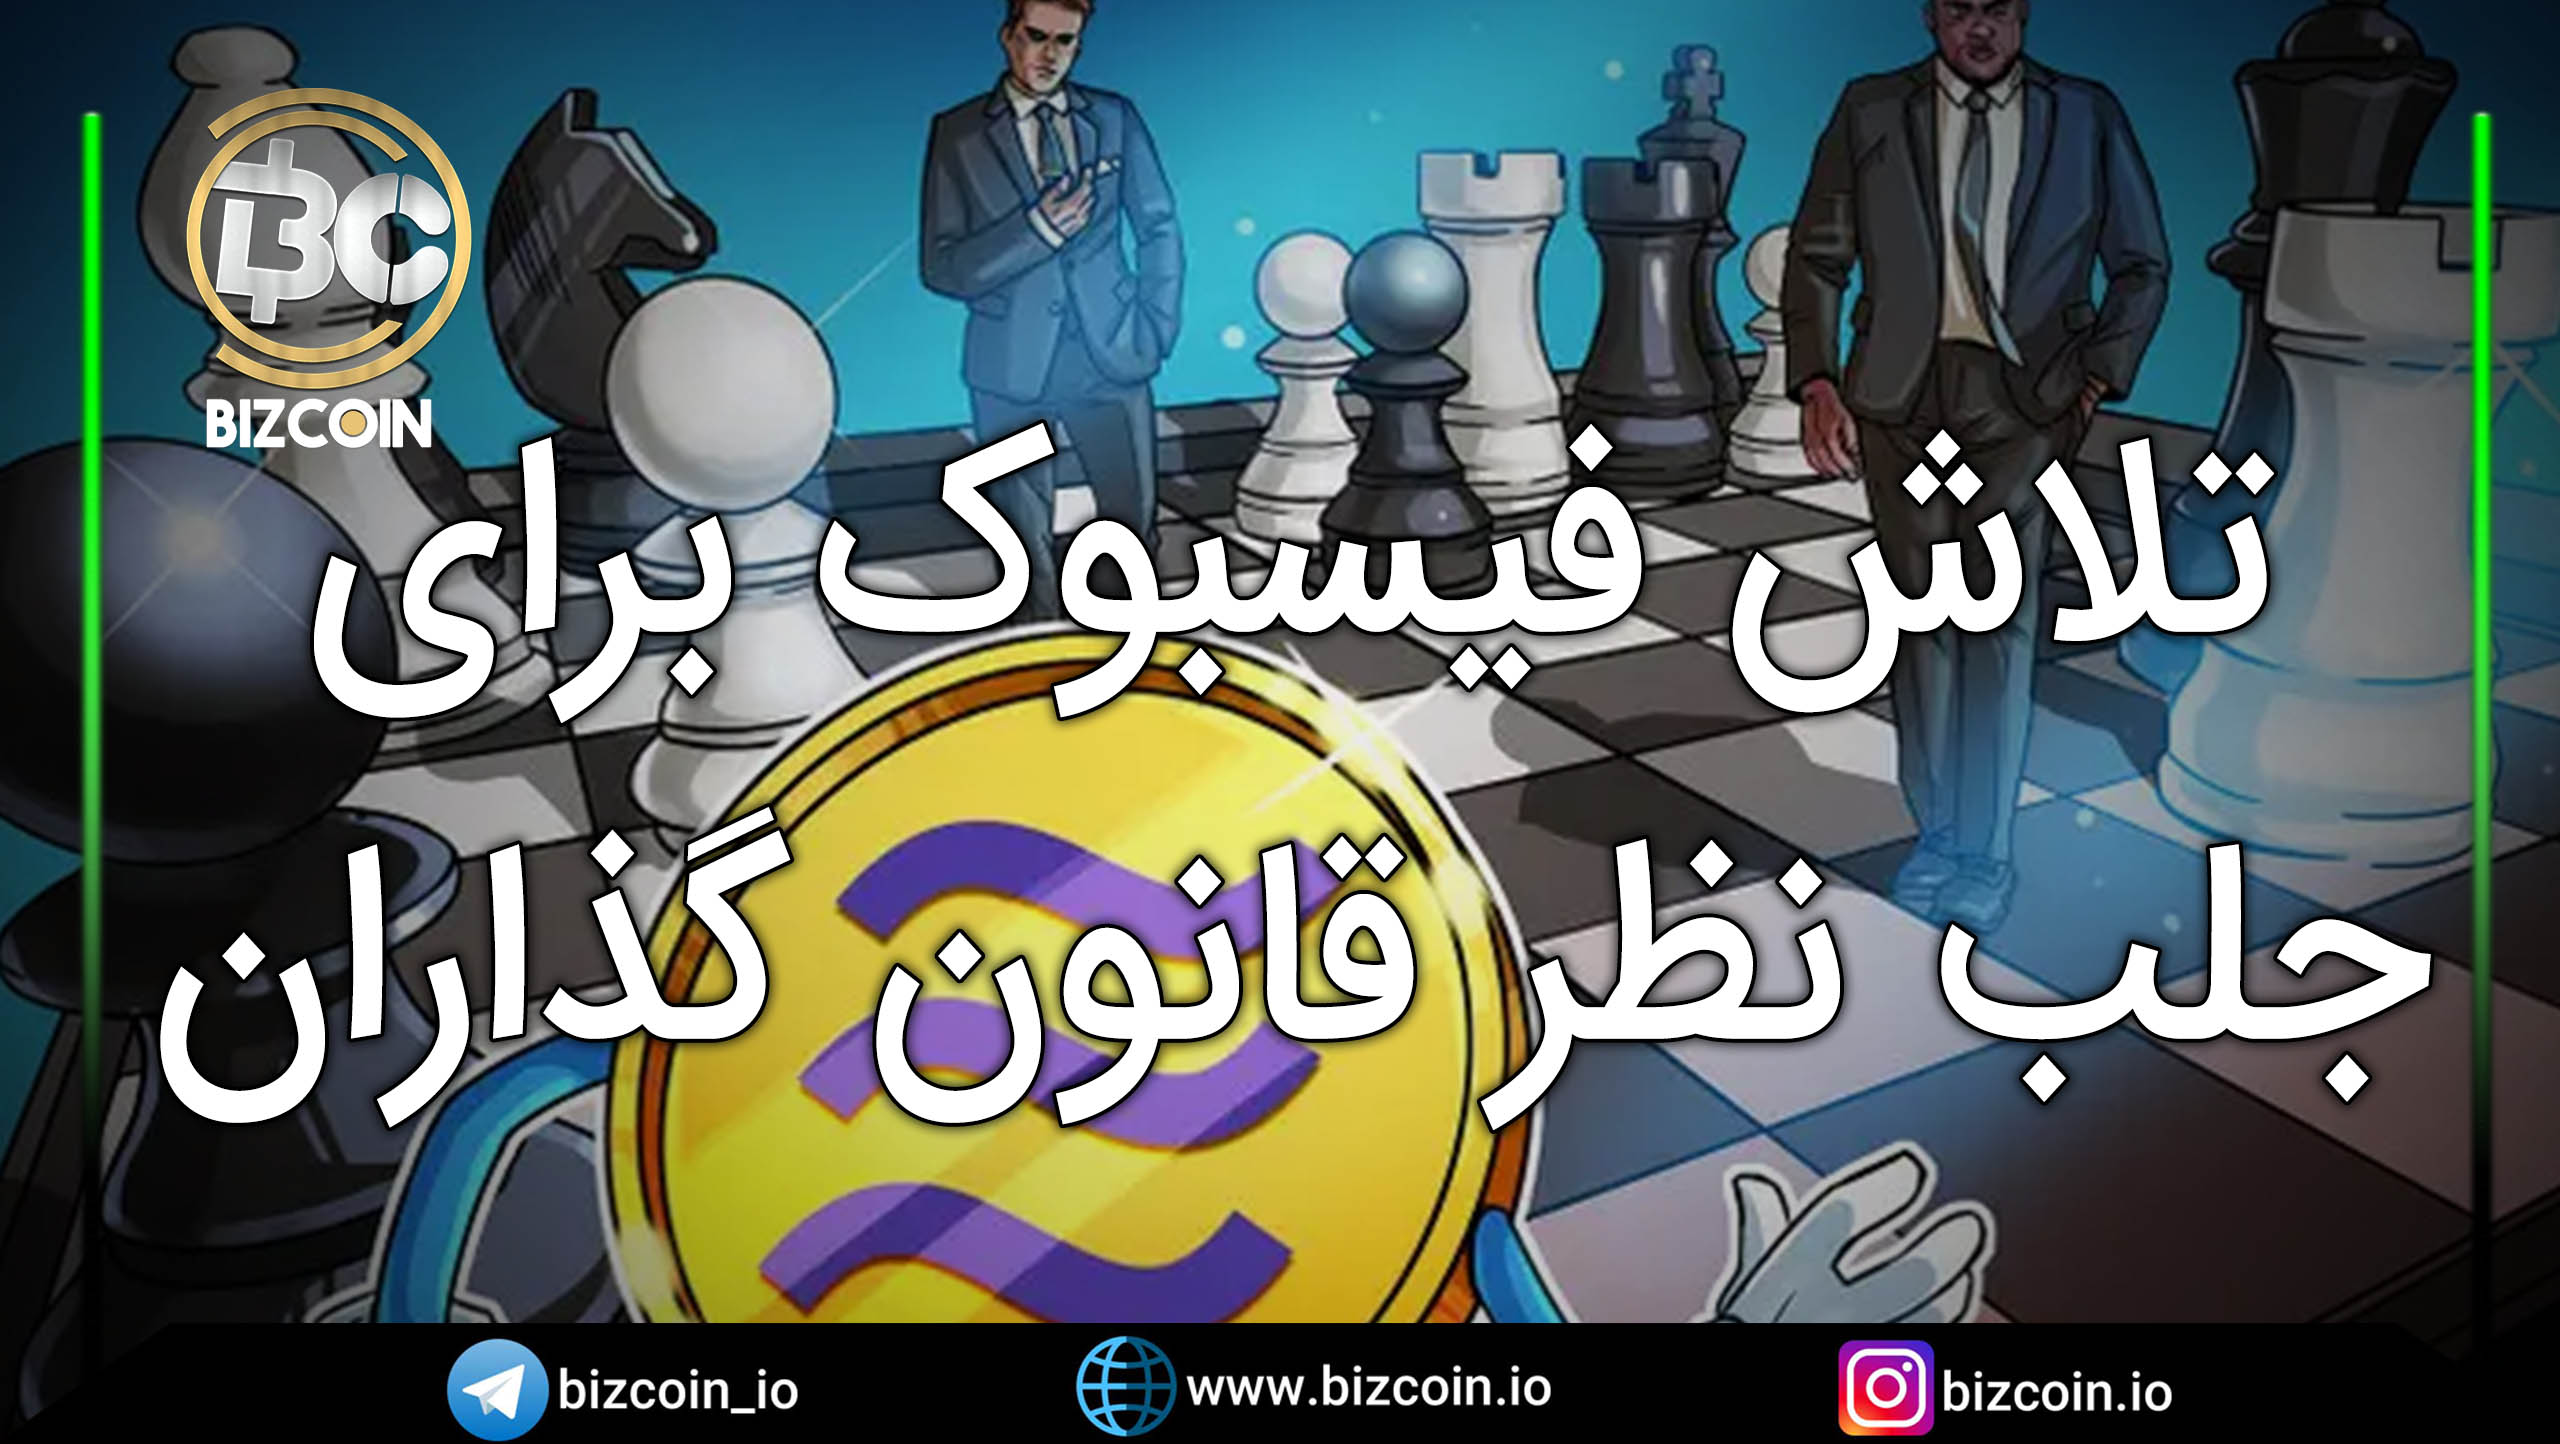 Facebook attempt to get the attention of lawmakers تلاش فیسبوک برای جلب نظر قانون گذاران